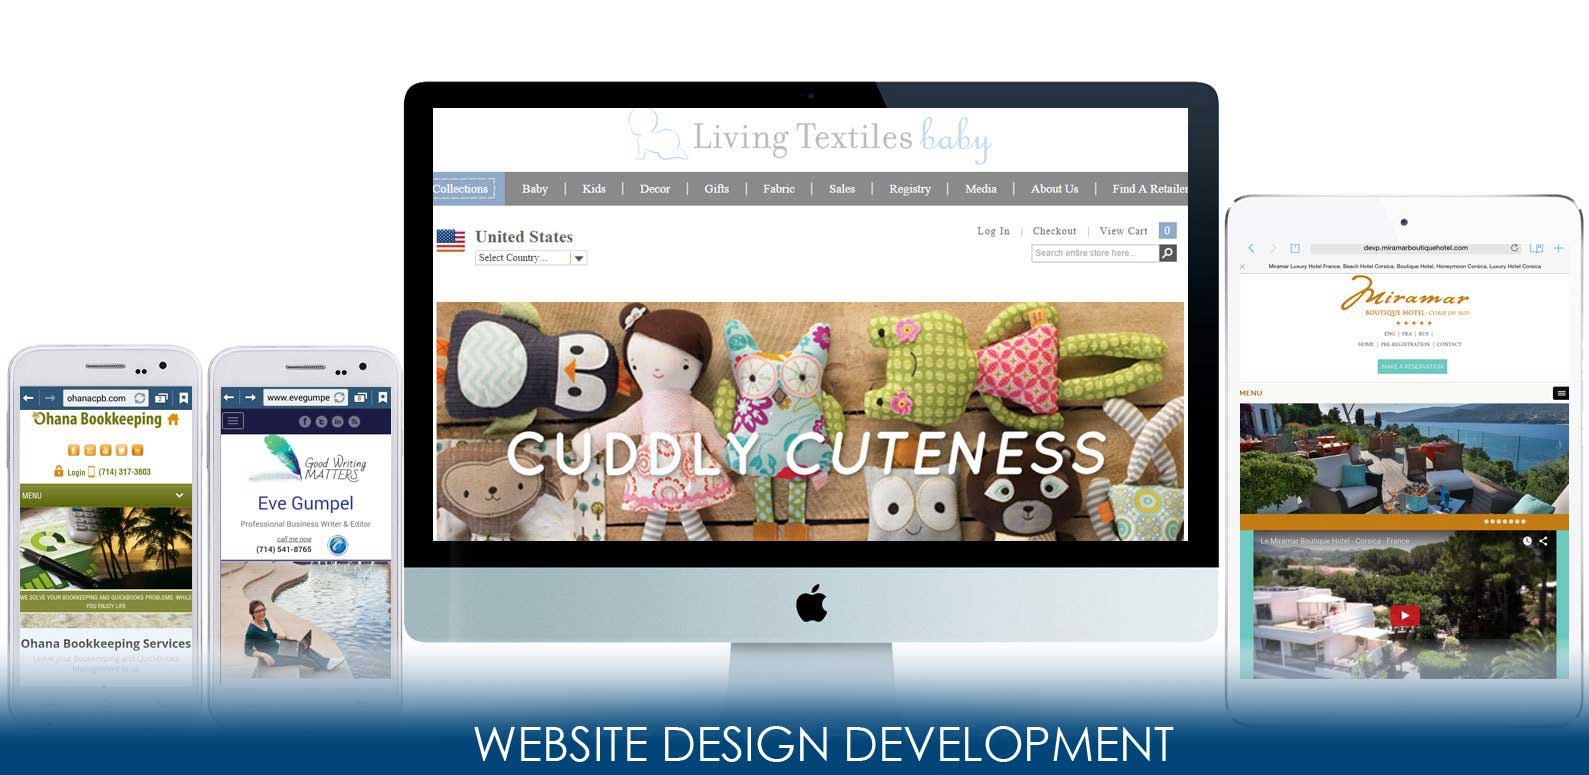 Neo Design Concepts Website Design Development Banner